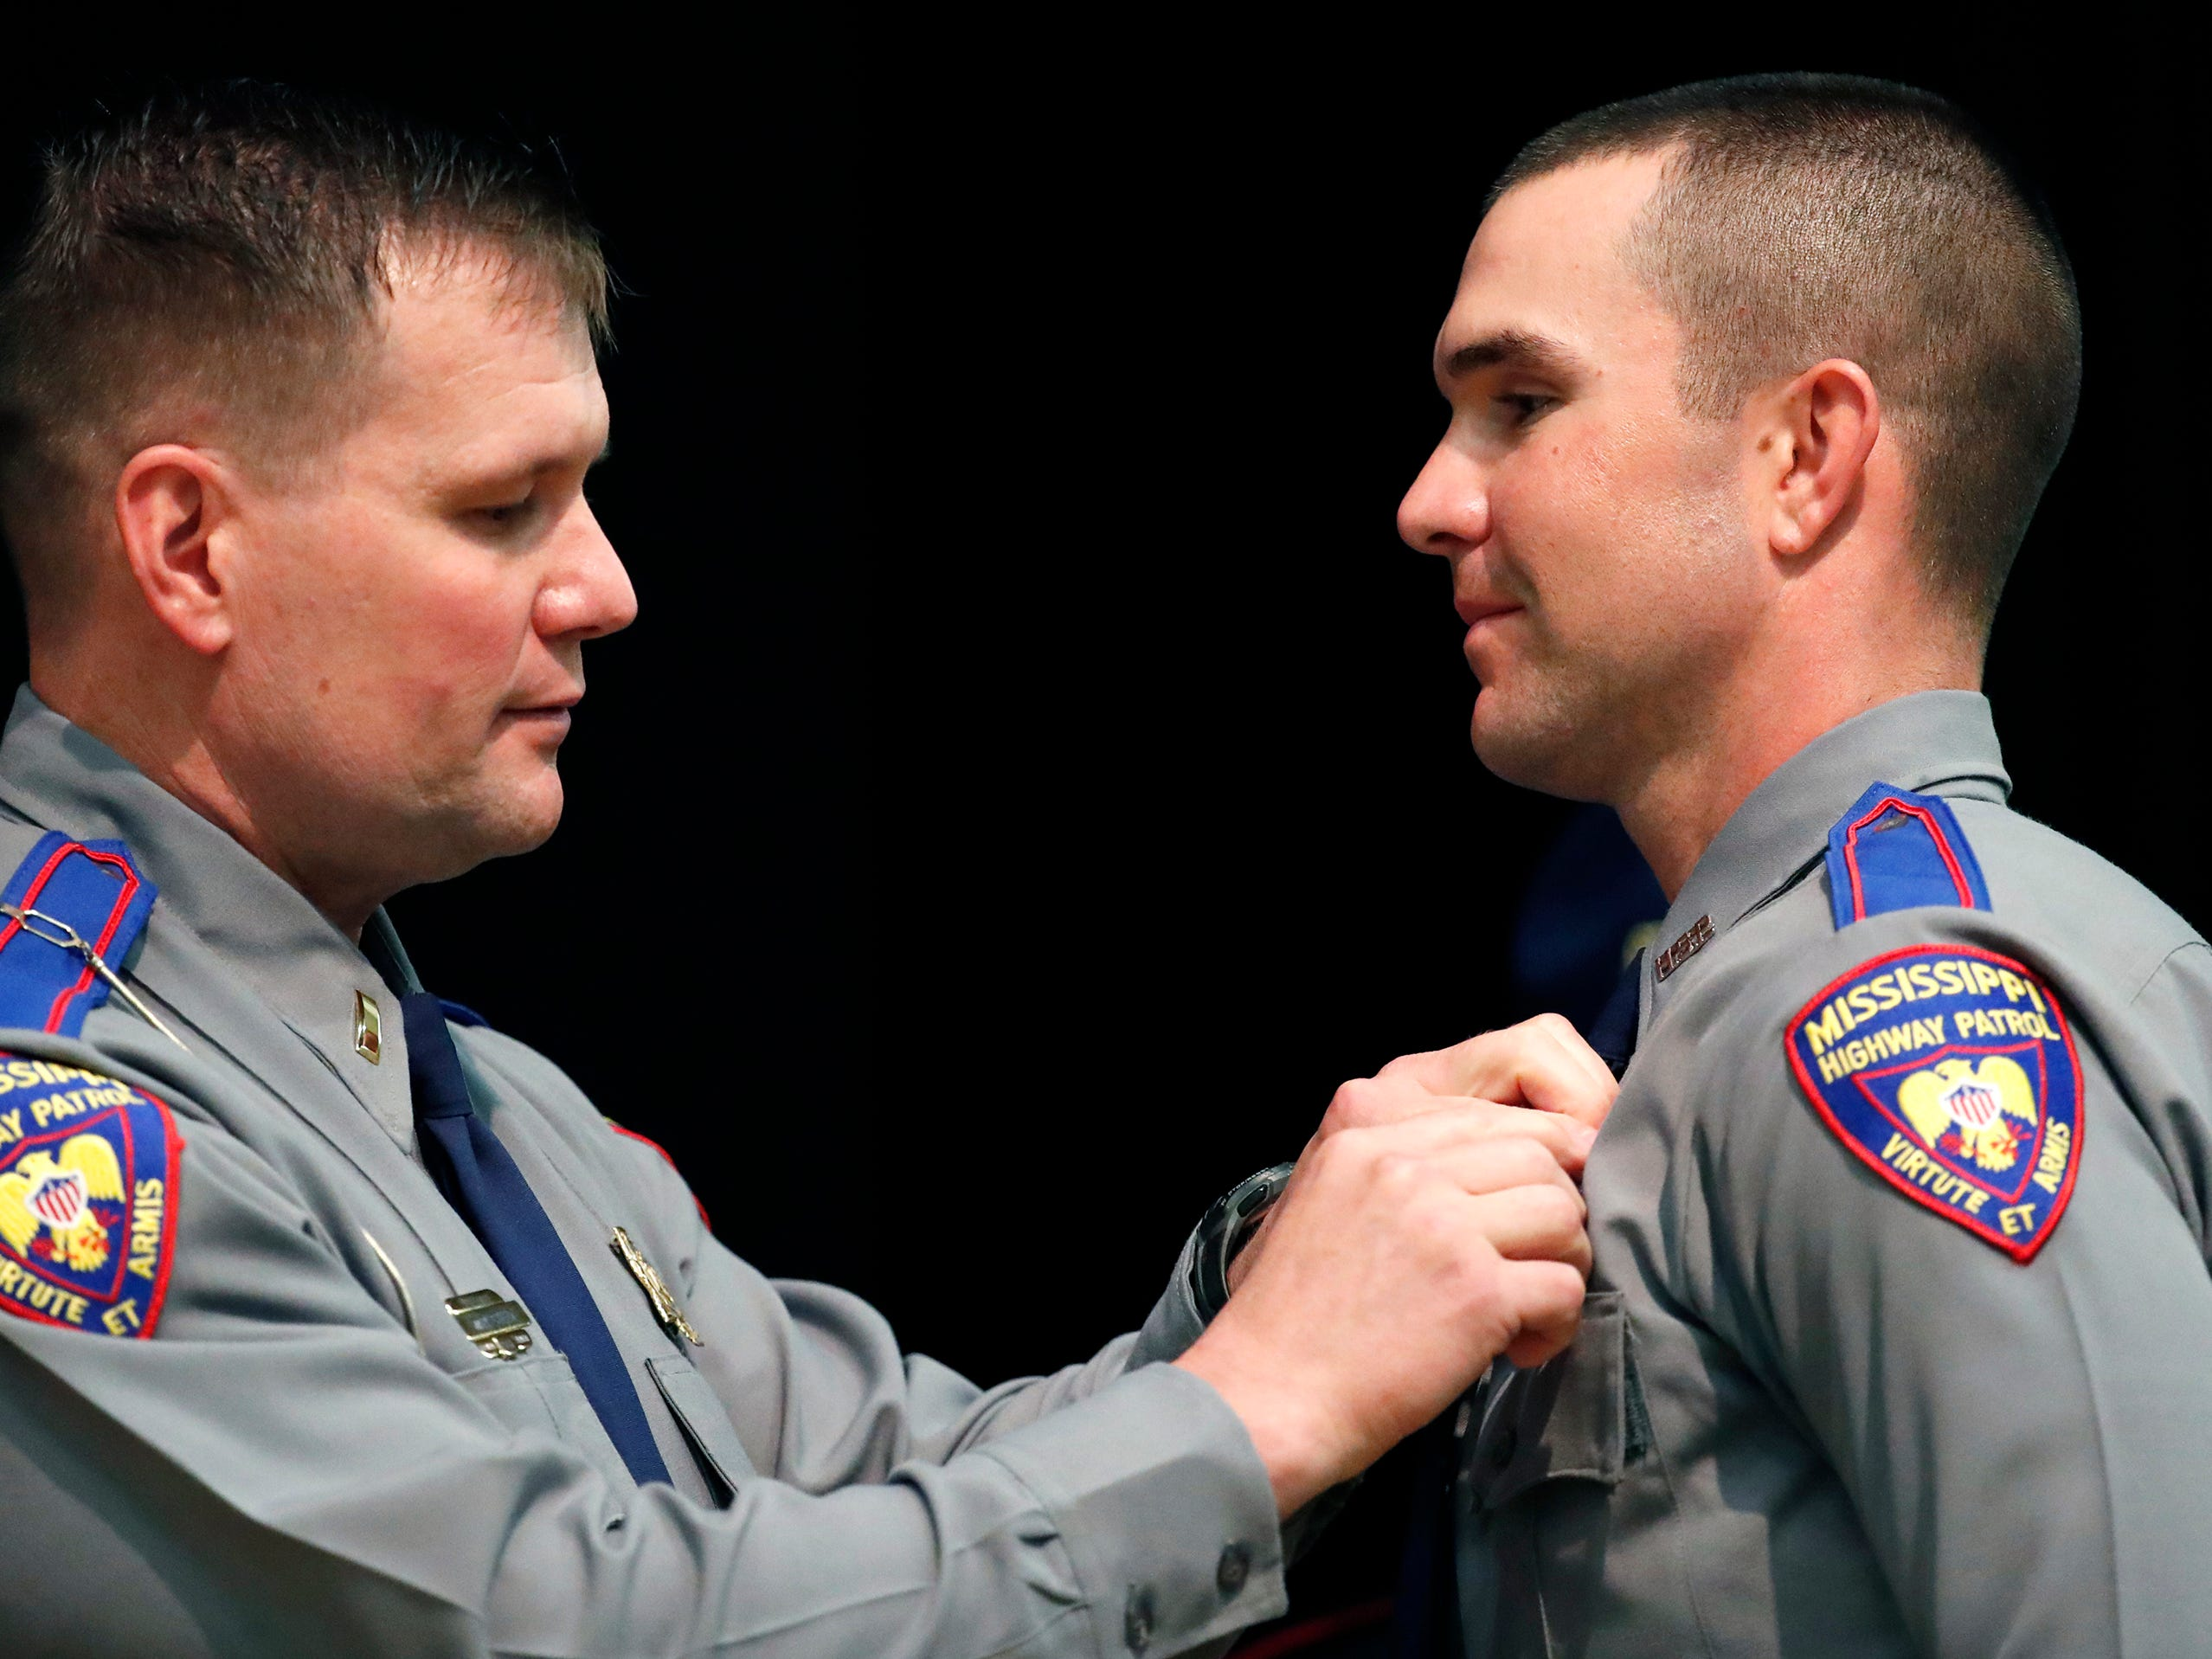 Cadet Jonathan Mark Steed, right, smiles as his father, Mississippi Bureau of Investigation Lt. Mark Steed, left, has difficulty in pinning the Mississippi Highway Patrol badge on him, Wednesday, May 1, 2019, during their graduation ceremony, in Pearl, Miss. The younger Steed was one of the 44 cadets sworn in as the newest Mississippi Highway Patrol troopers. The patrol's training lasts 22 weeks and involves classroom instruction, physical fitness, firearms and emergency operations training as well as a variety of police science courses.